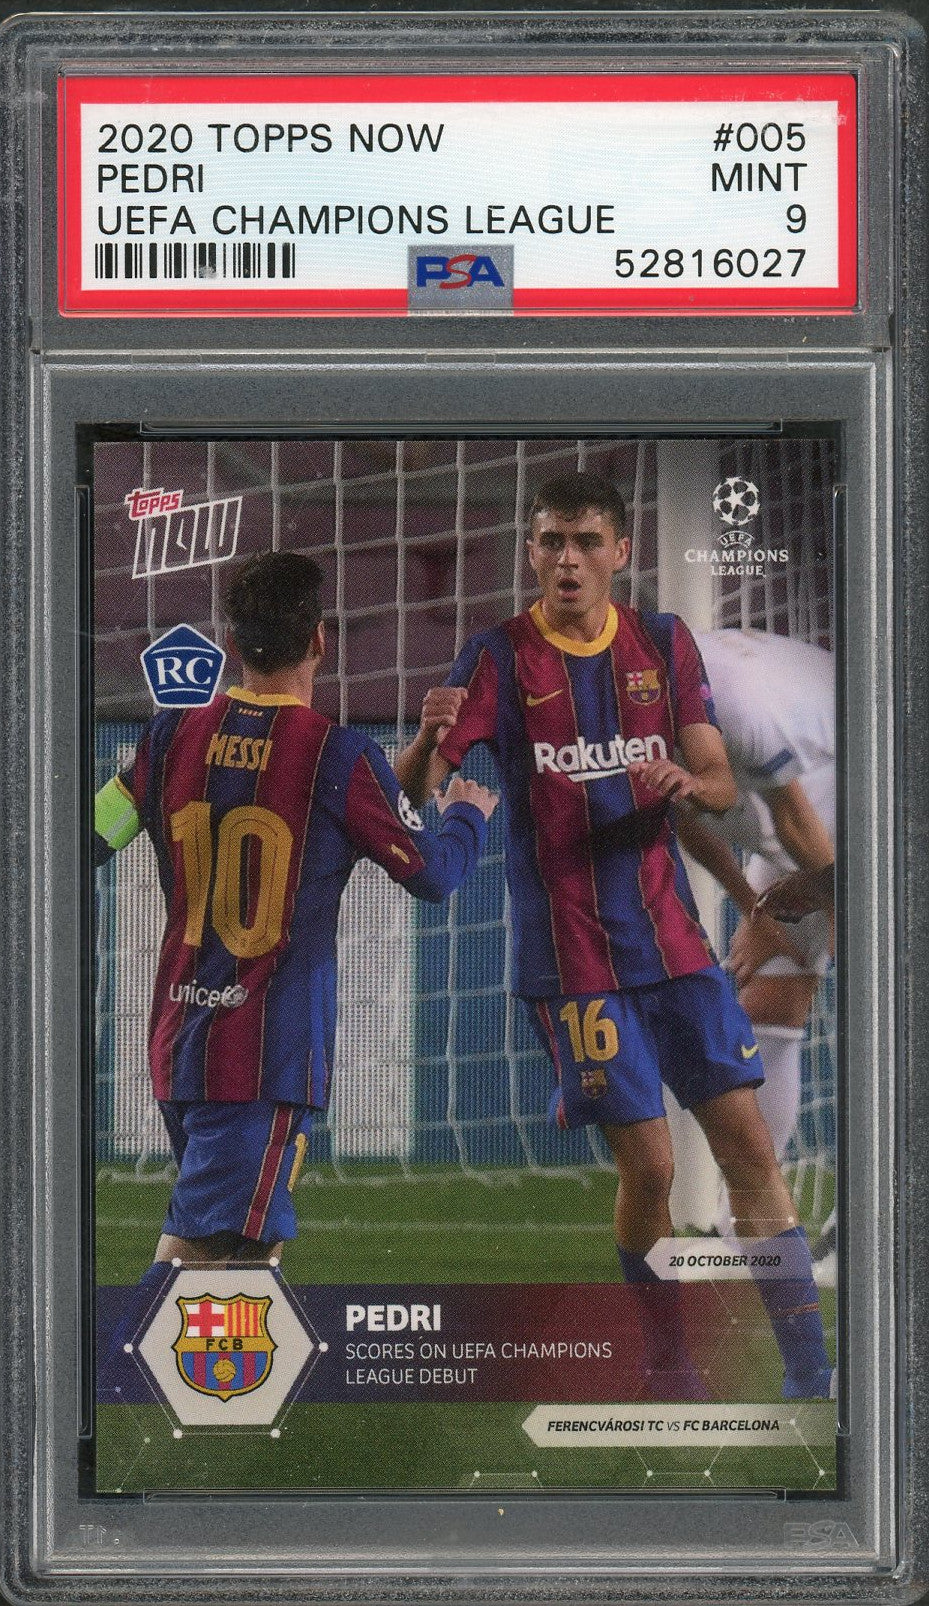 Pedri FC Barcelona 2020 Topps Now Soccer Rookie Card RC #005 Graded PSA 9 MINT-Powers Sports Memorabilia